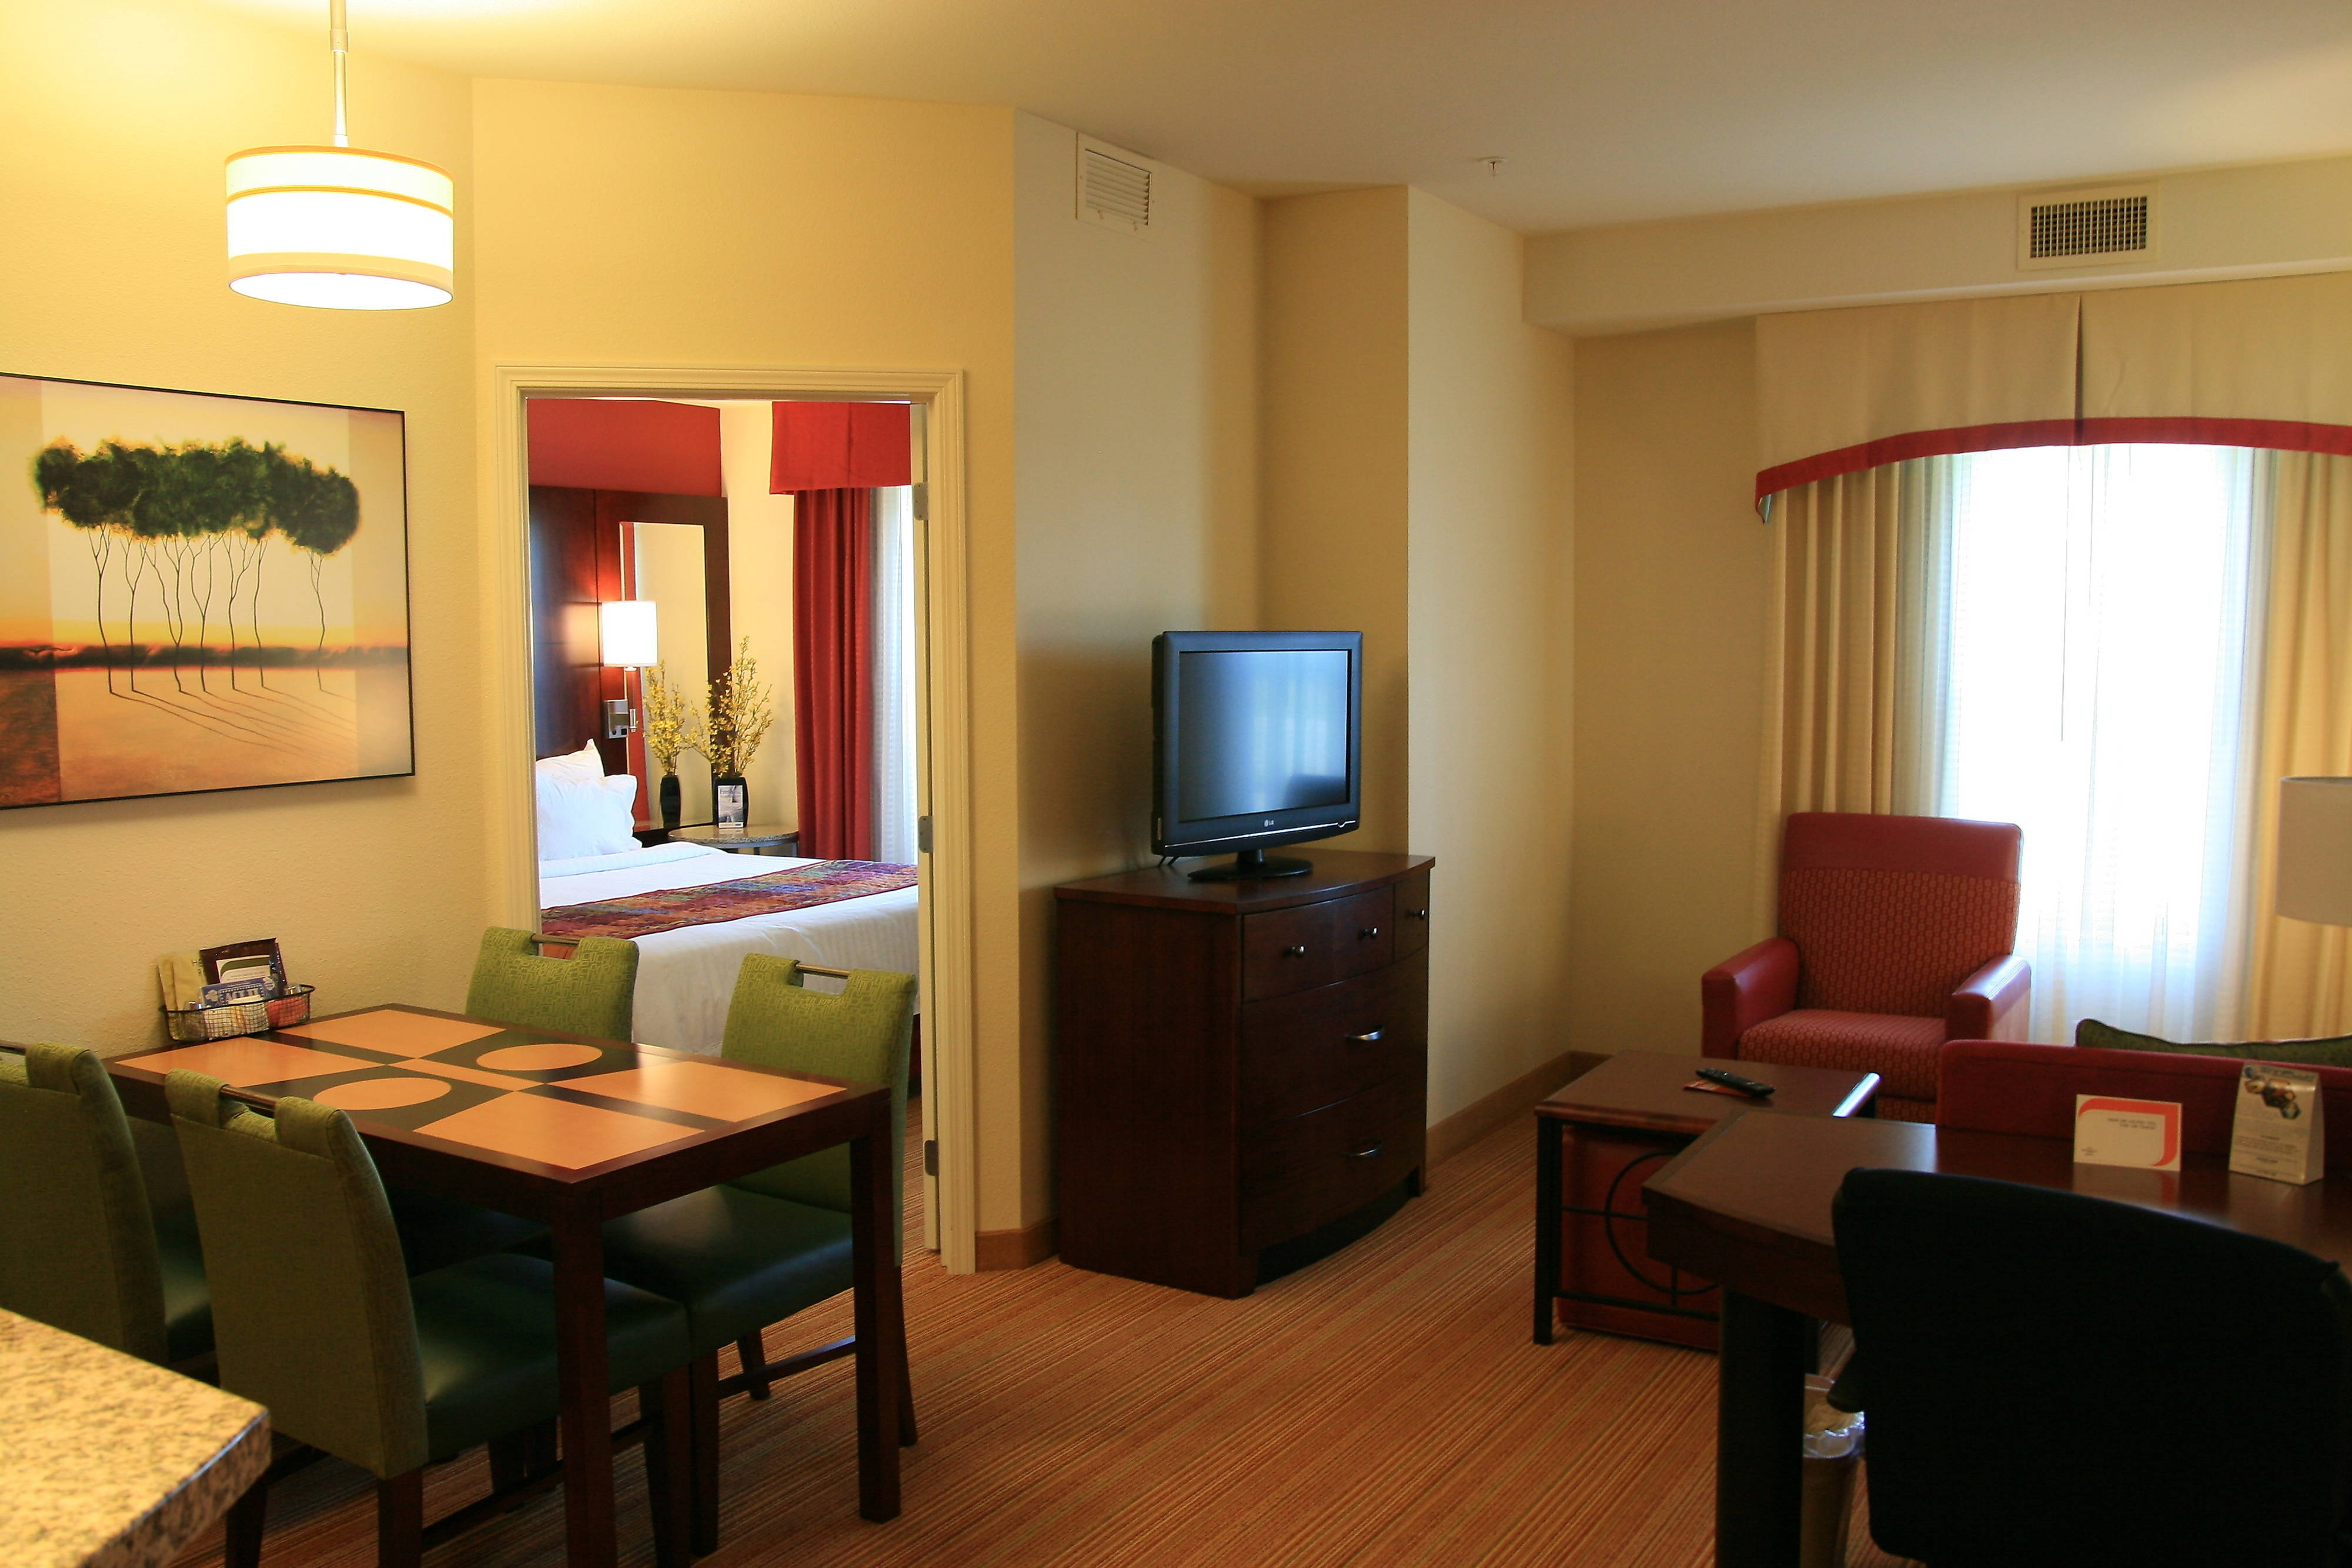 atlts hotel suites ga suite residential hotels clsc northlake and bedroom towneplace in hor rooms atlanta orleans new